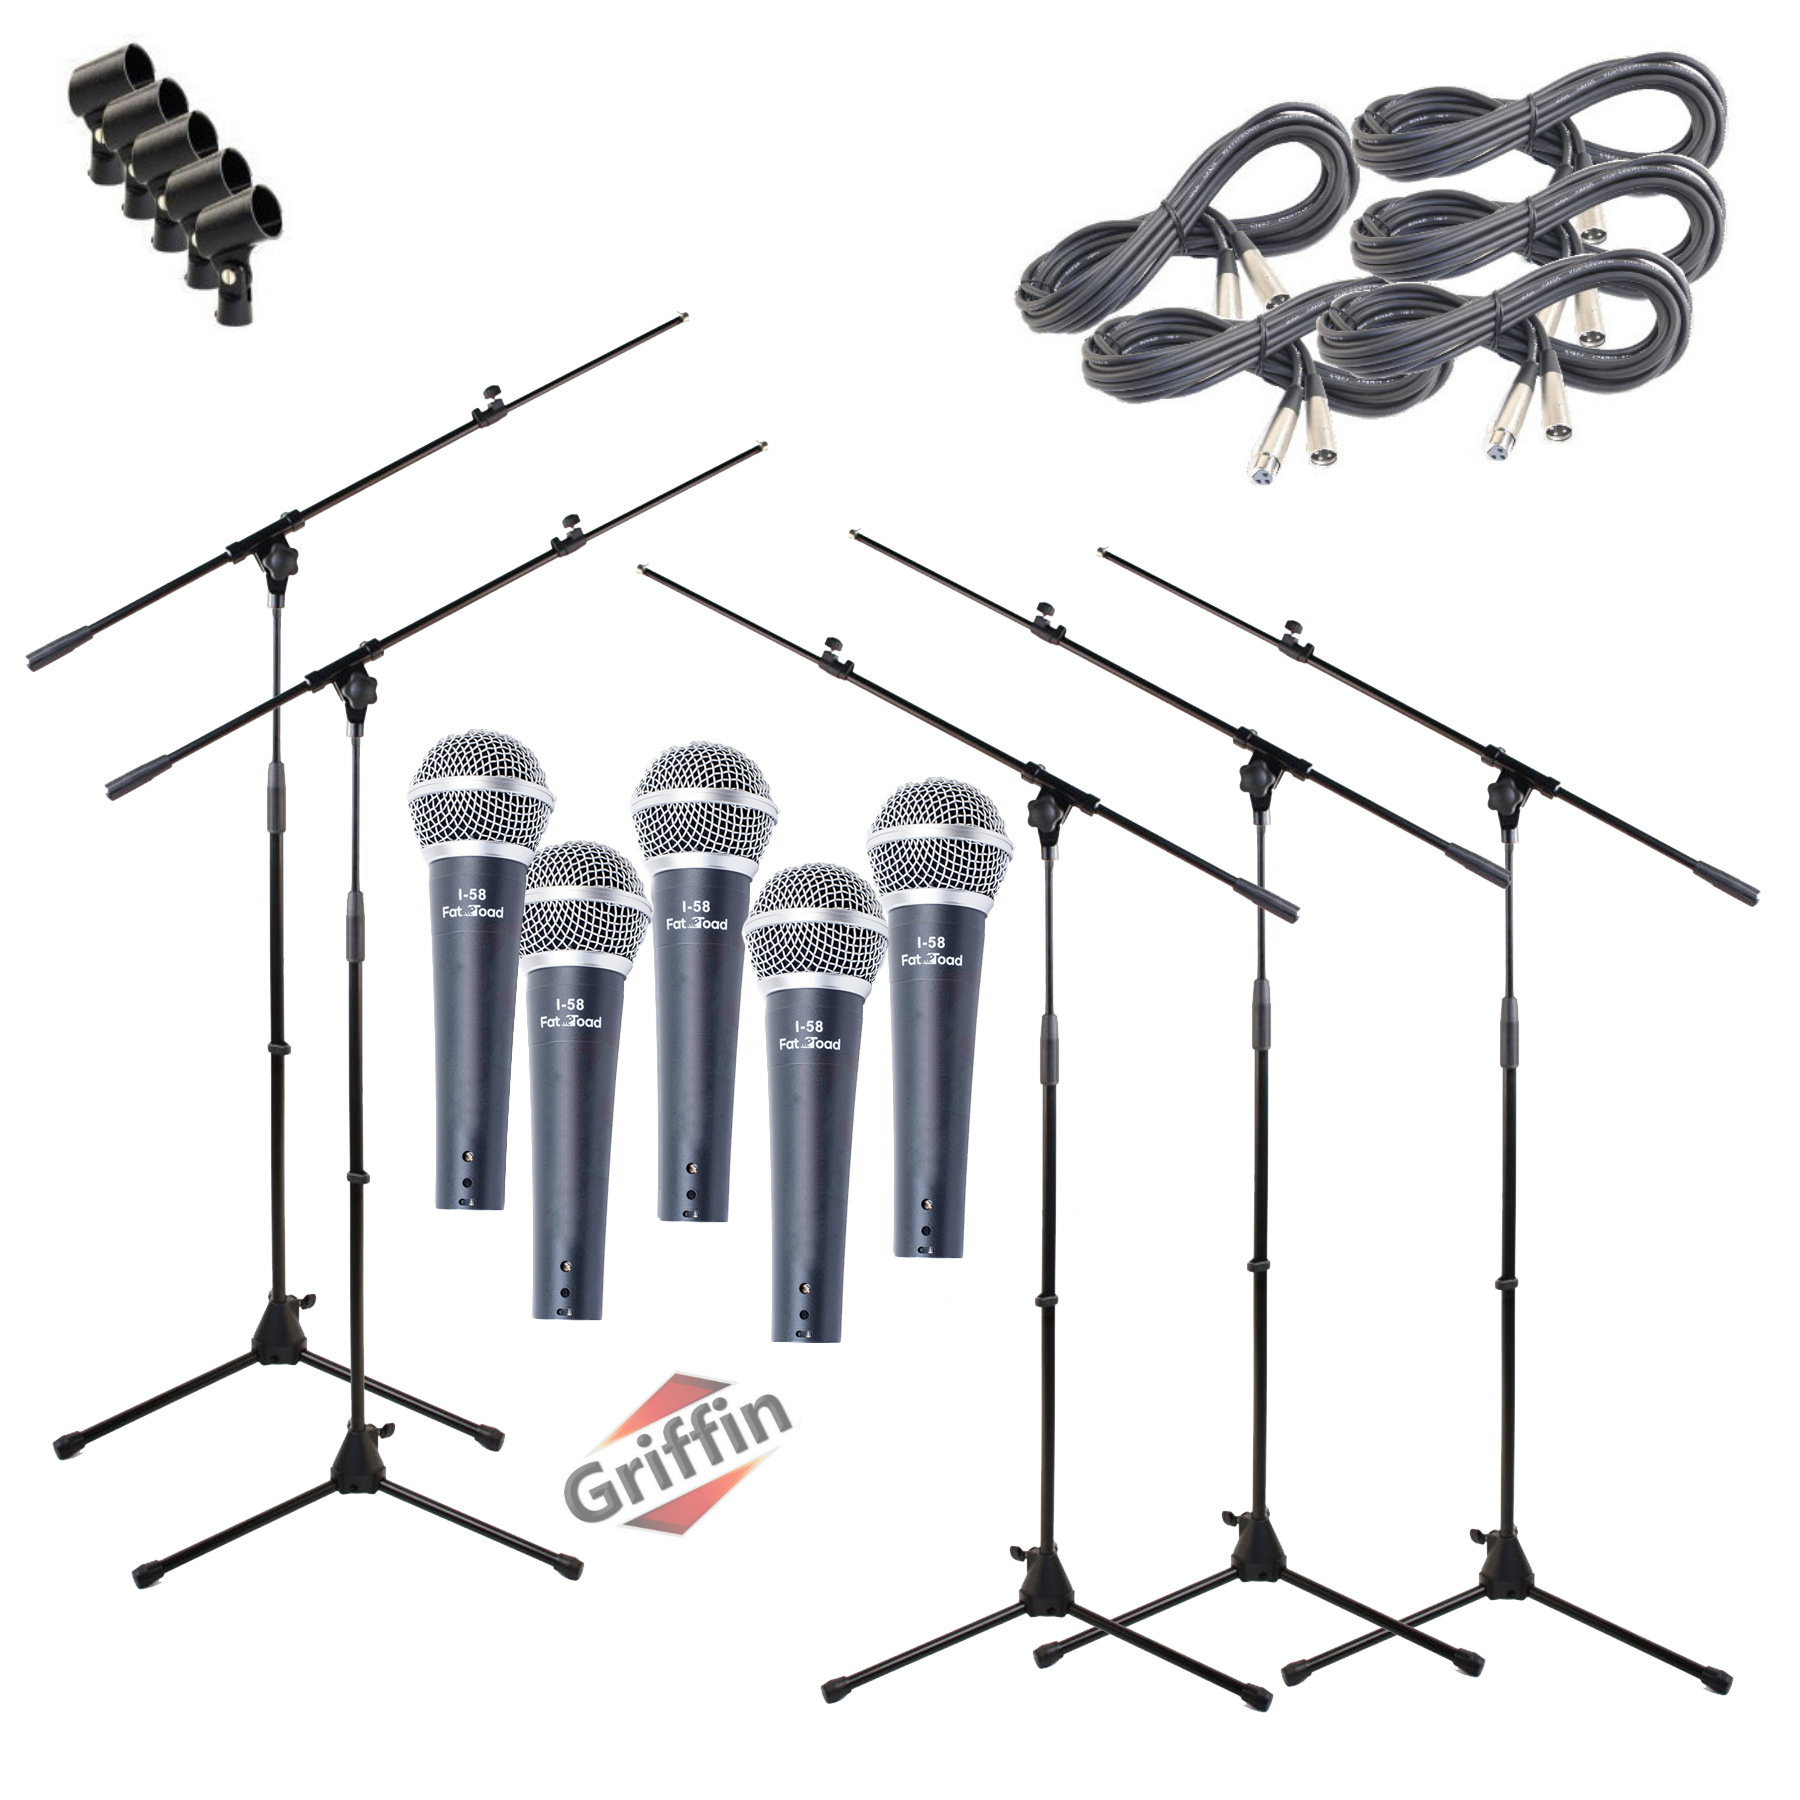 Unidirectional Microphone Package with Mic Boom Stands, XLR Cables and Clips 5 Pack by Griffin